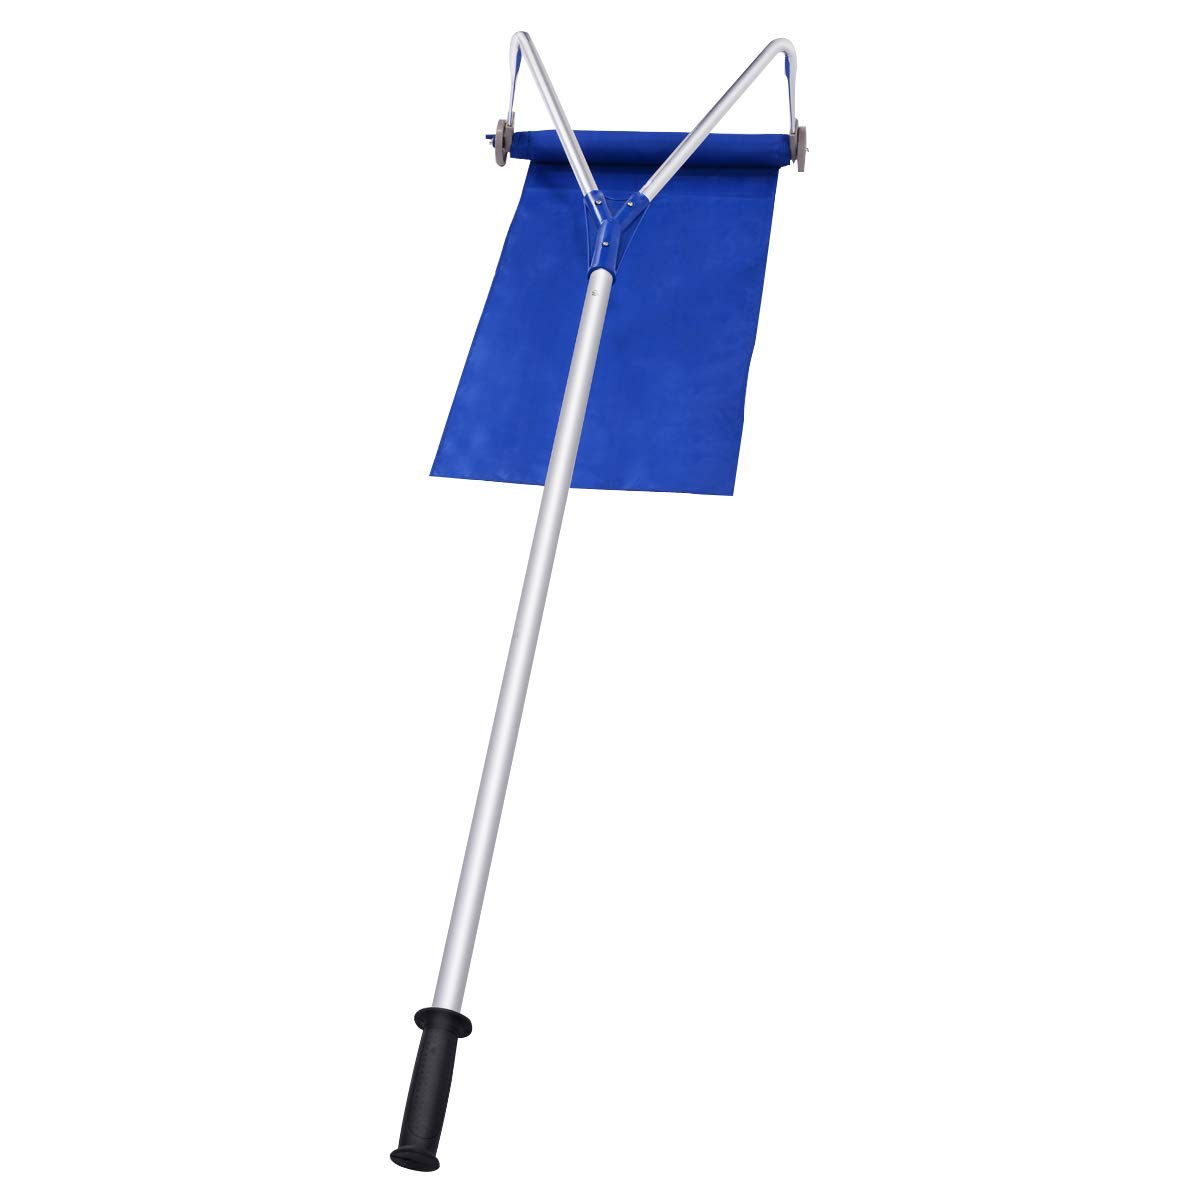 QWE Roof Snow Rake Removal Tool 20 Ft with Adjustable Telescoping Handle Will Relieve Your House of The Heavy Snow Relieves Your Back of Any Strenuous Difficult Work by QWE